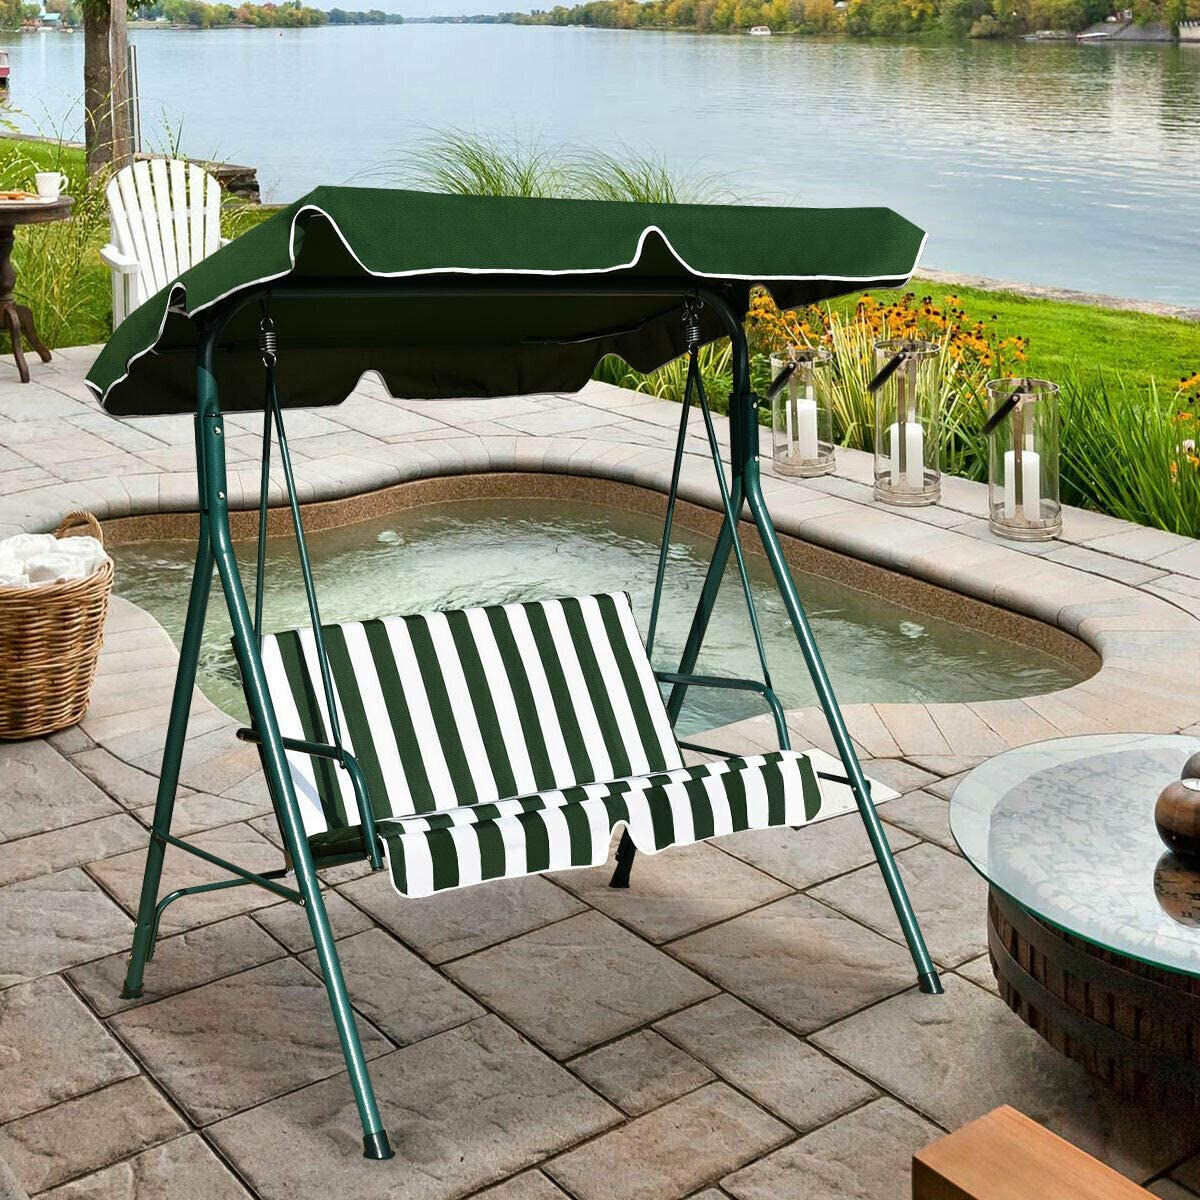 Amazon Com Alek Shop Outdoor Swing Glider Awning 2 Person Chair Loveseat Canopy Patio Porch Furniture Hammock Cushioned Steel Lounge Garden Yard Green Home Kitchen